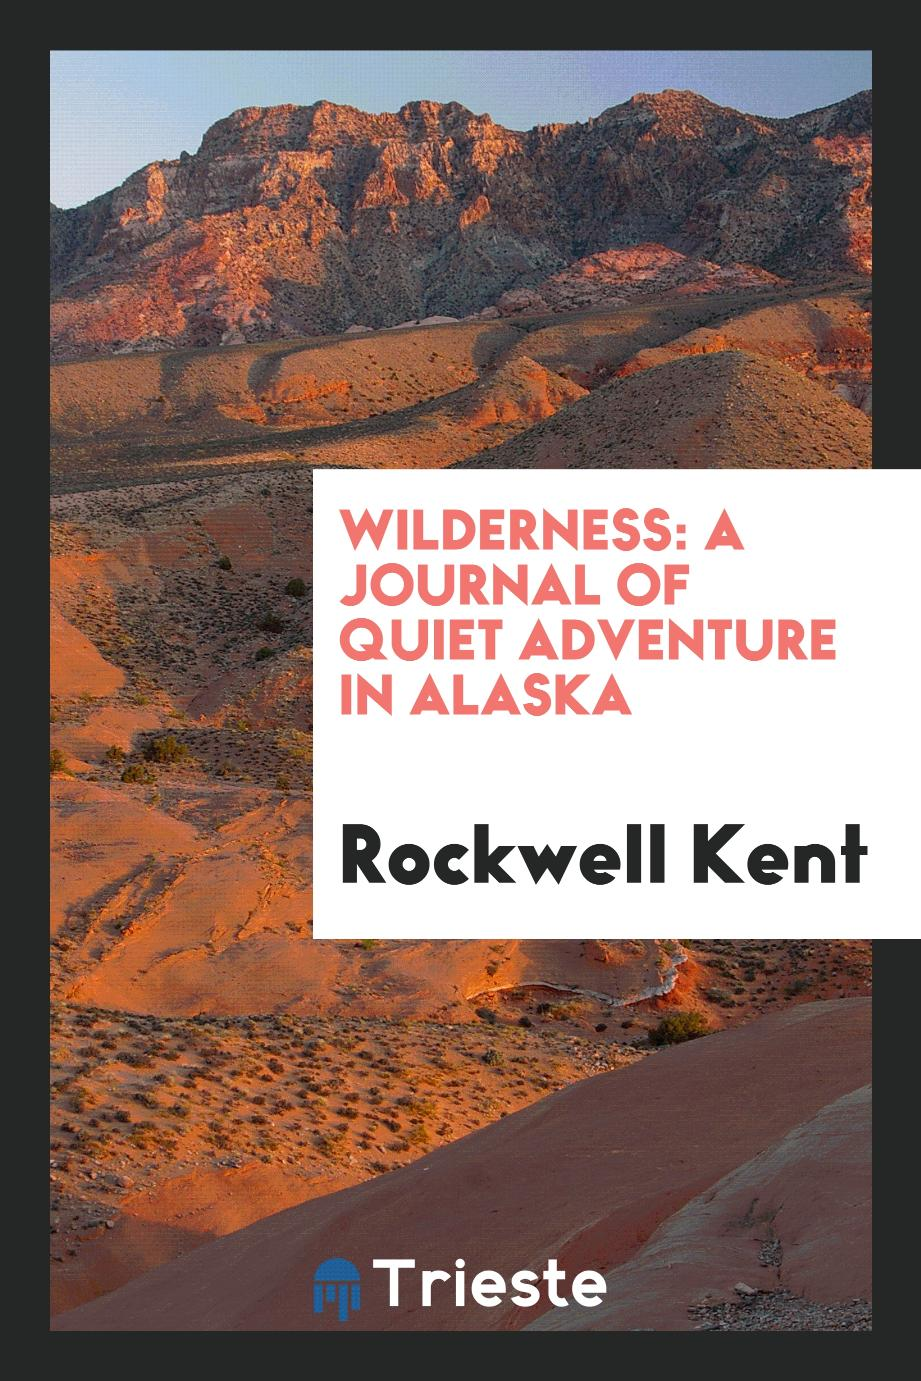 Wilderness: a journal of quiet adventure in Alaska